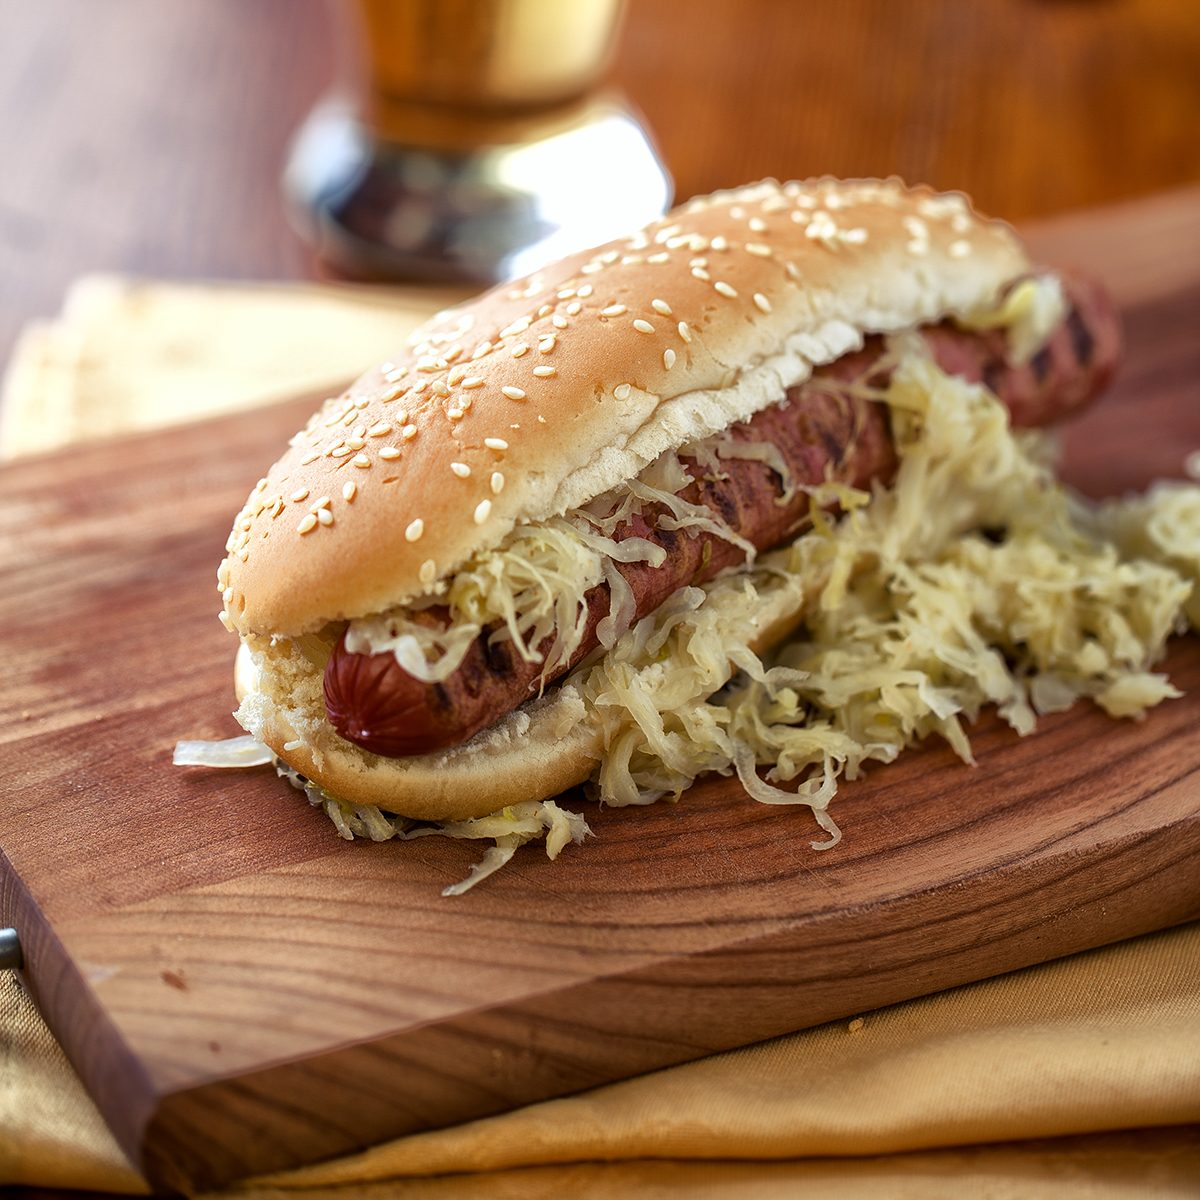 Sandwich with sausage and sauerkraut